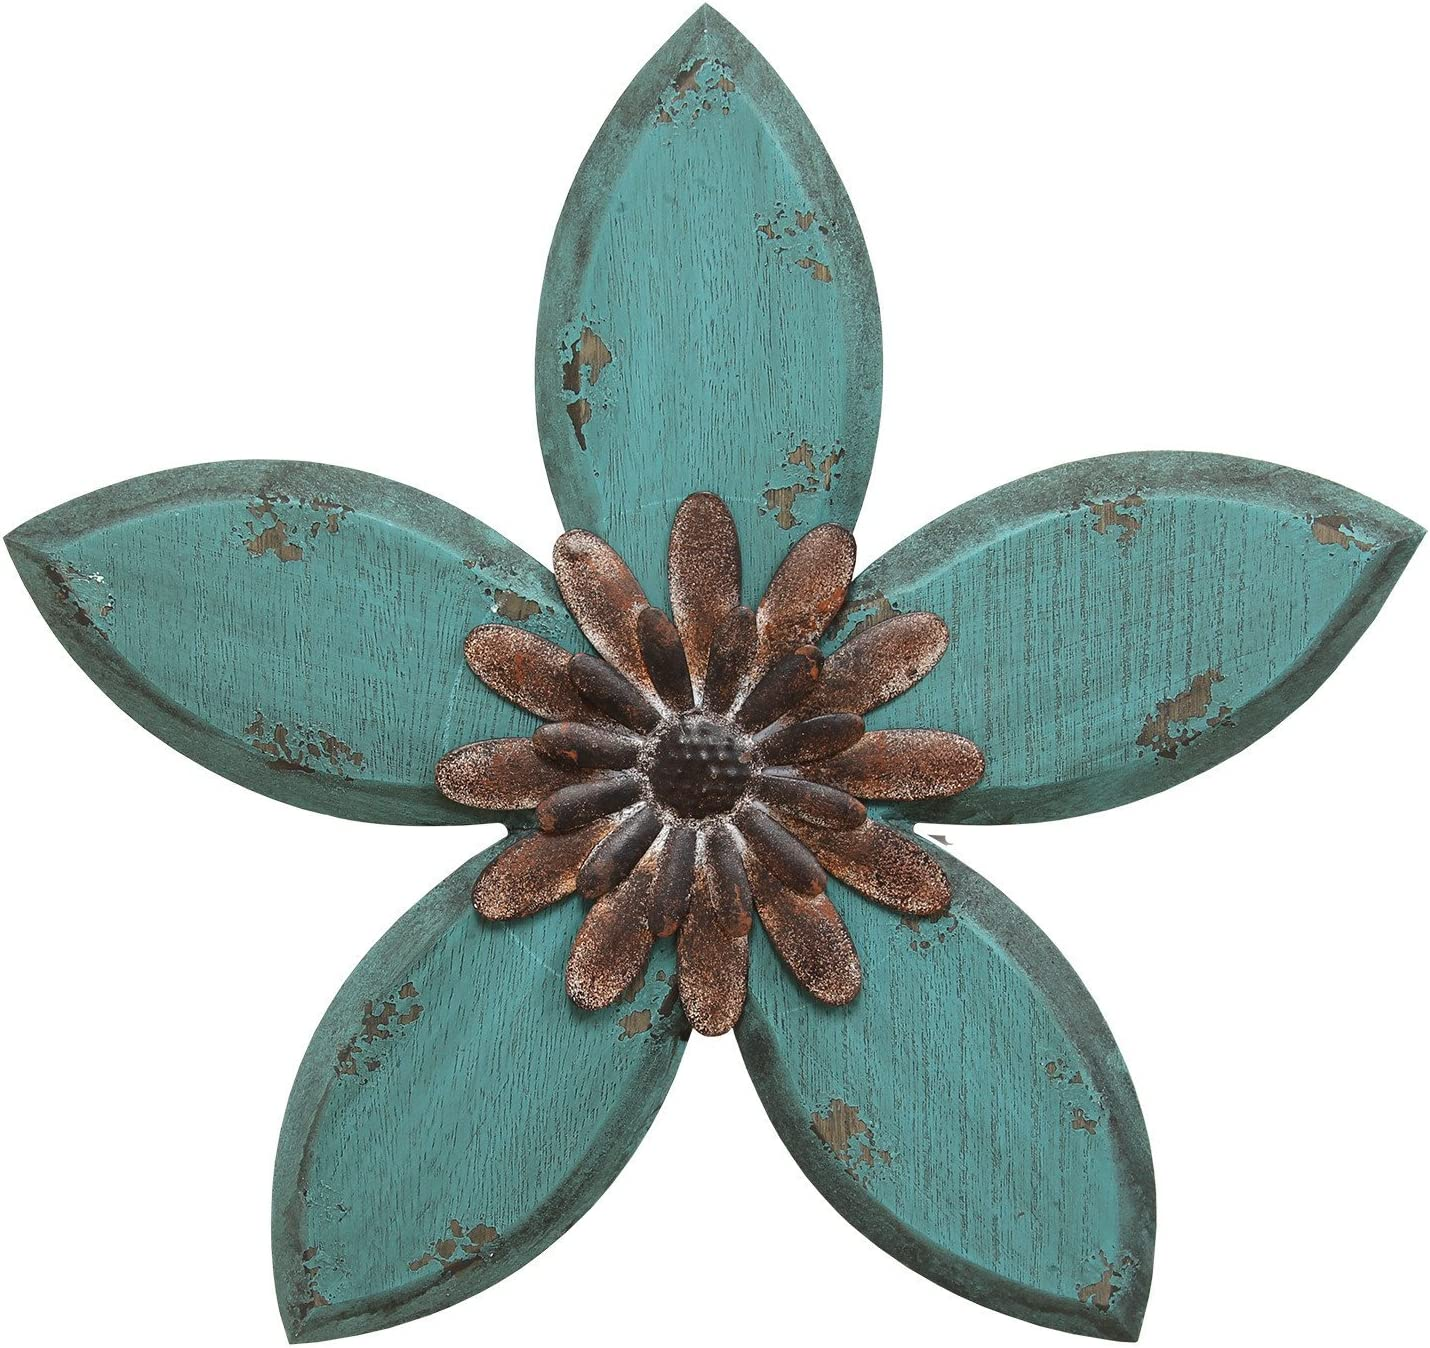 Stratton Home Decor SHD0165 Antique Flower Wall Decor, 14.75 W X 1.18 D X 13.98 H, Teal/Red